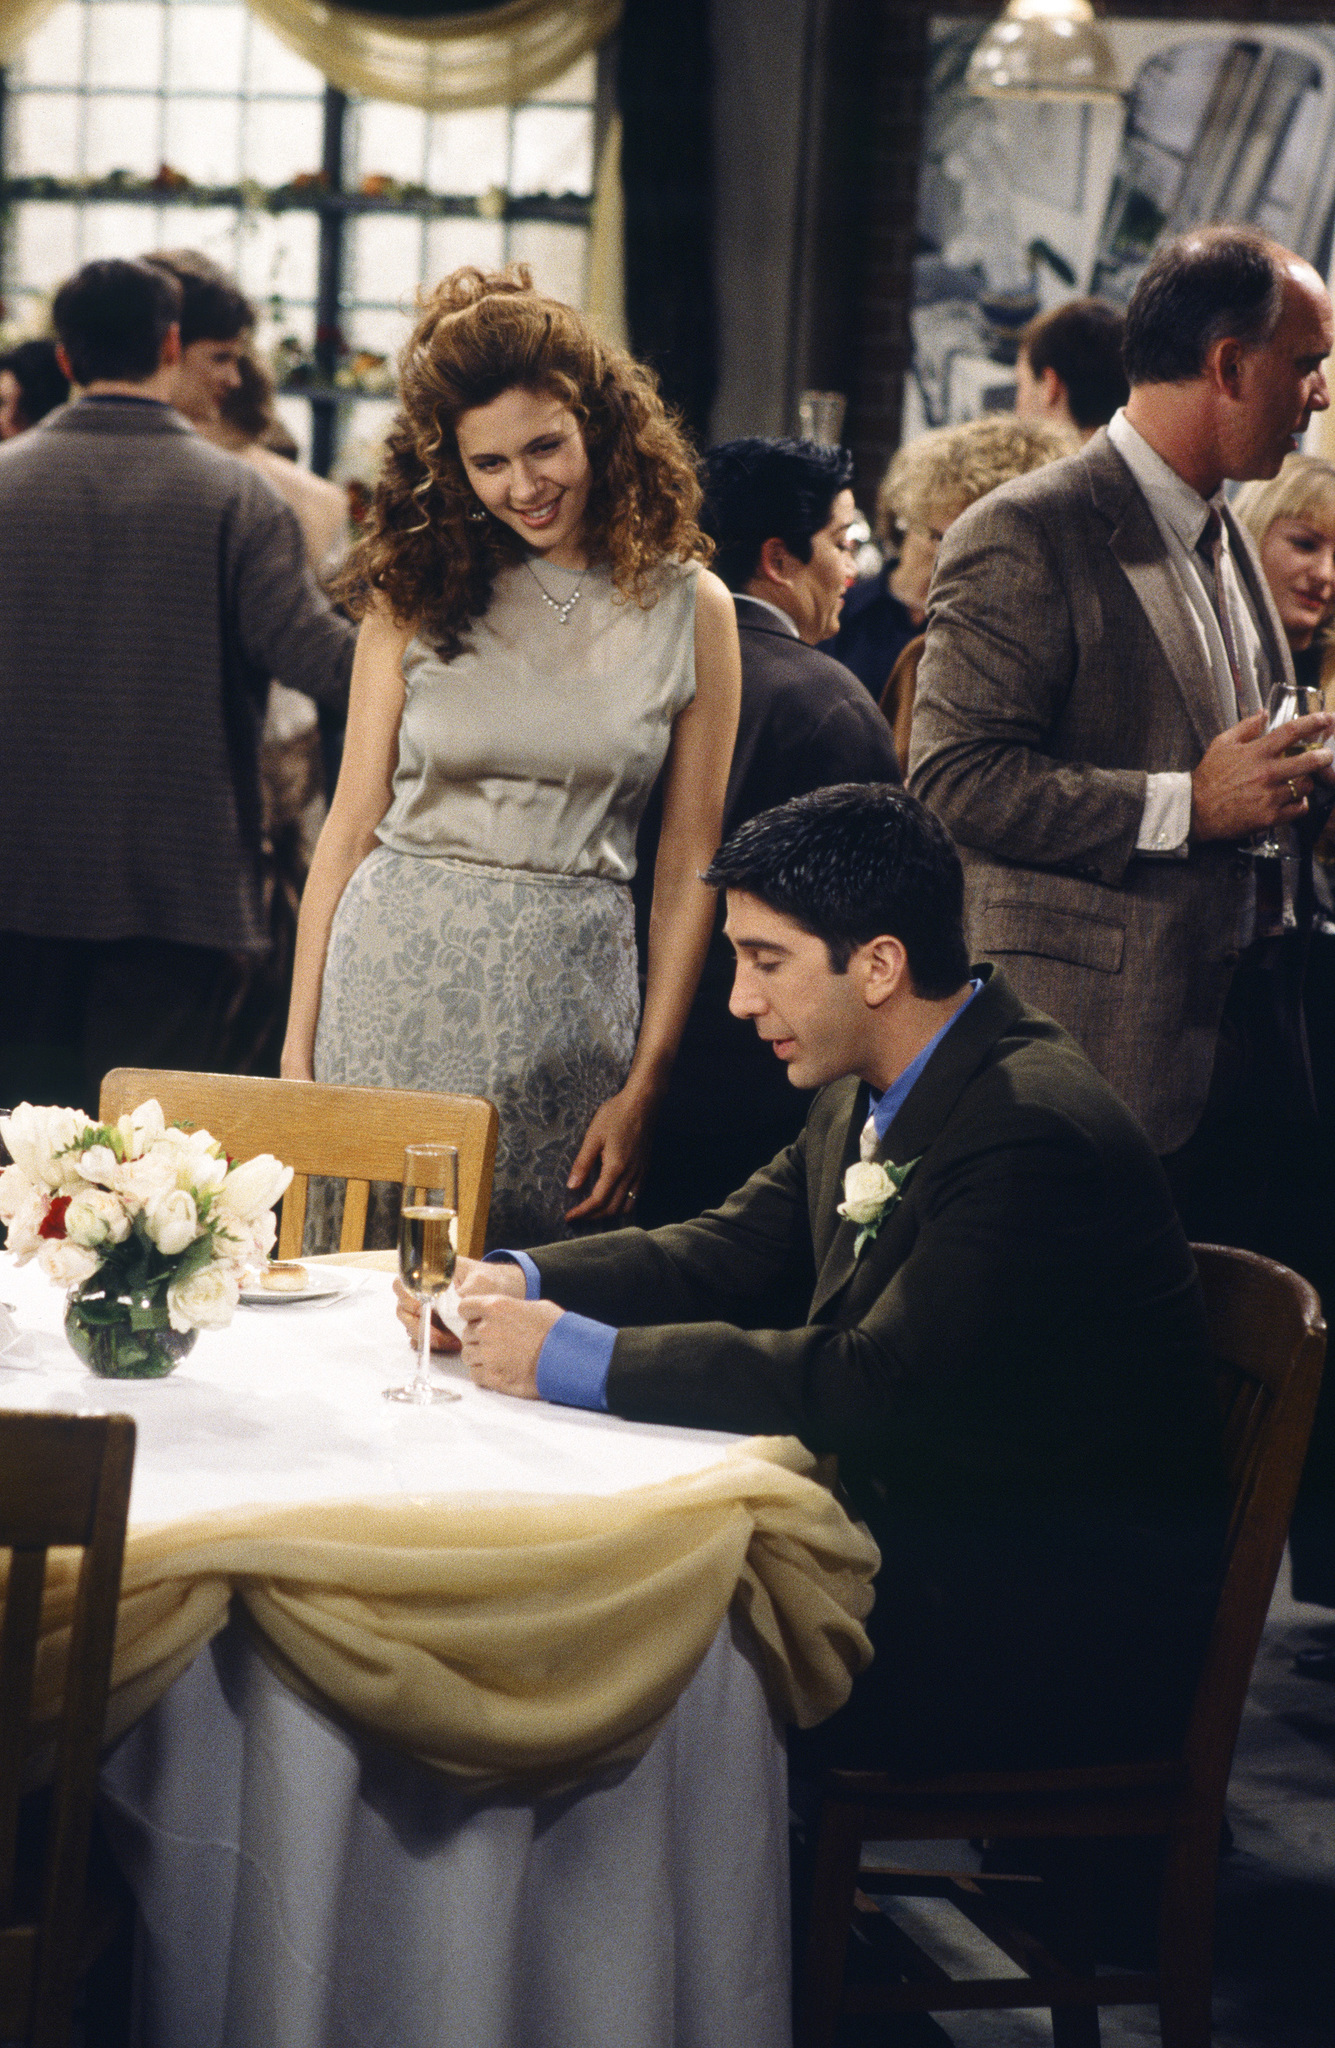 Friends: The One with the Lesbian Wedding | Season 2 | Episode 11